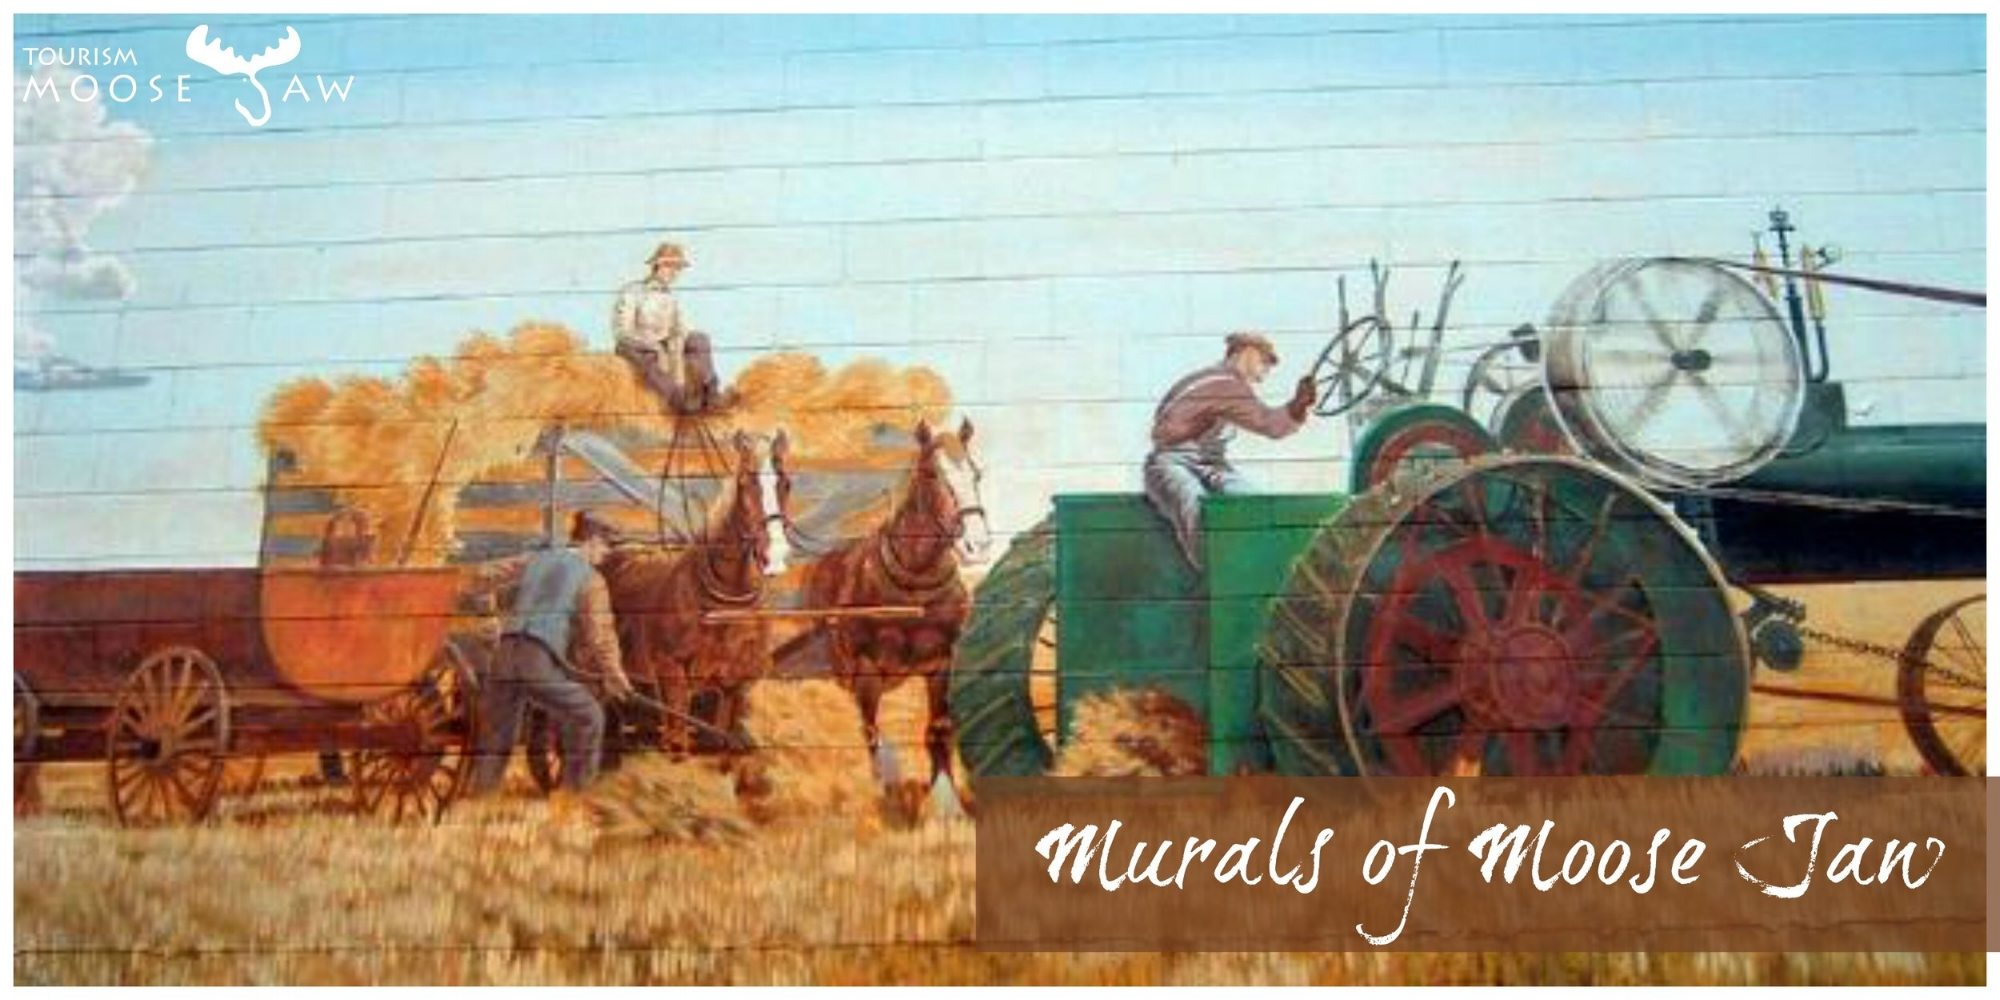 Mural of Moose Jaw  We are known for our larger than life wall paintings here in Moose Jaw. With 48 of these beauties around town we invite you to stretch your legs and find a few in our downtown area.